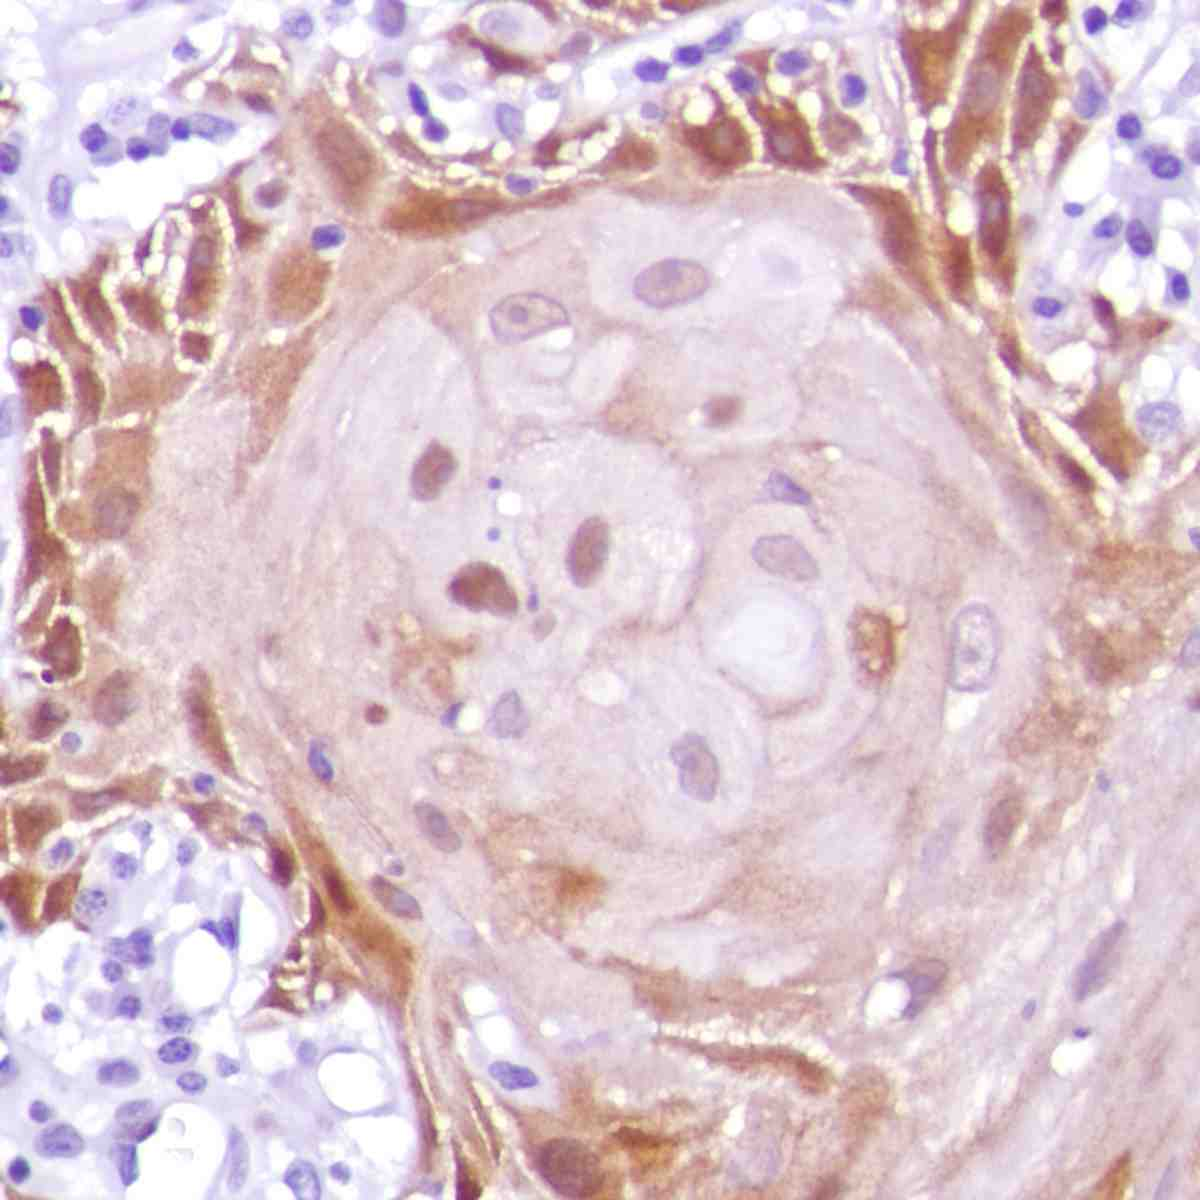 Human Skin Squamous Cell Carcinoma stained with anti-MAGE-A1 antibody